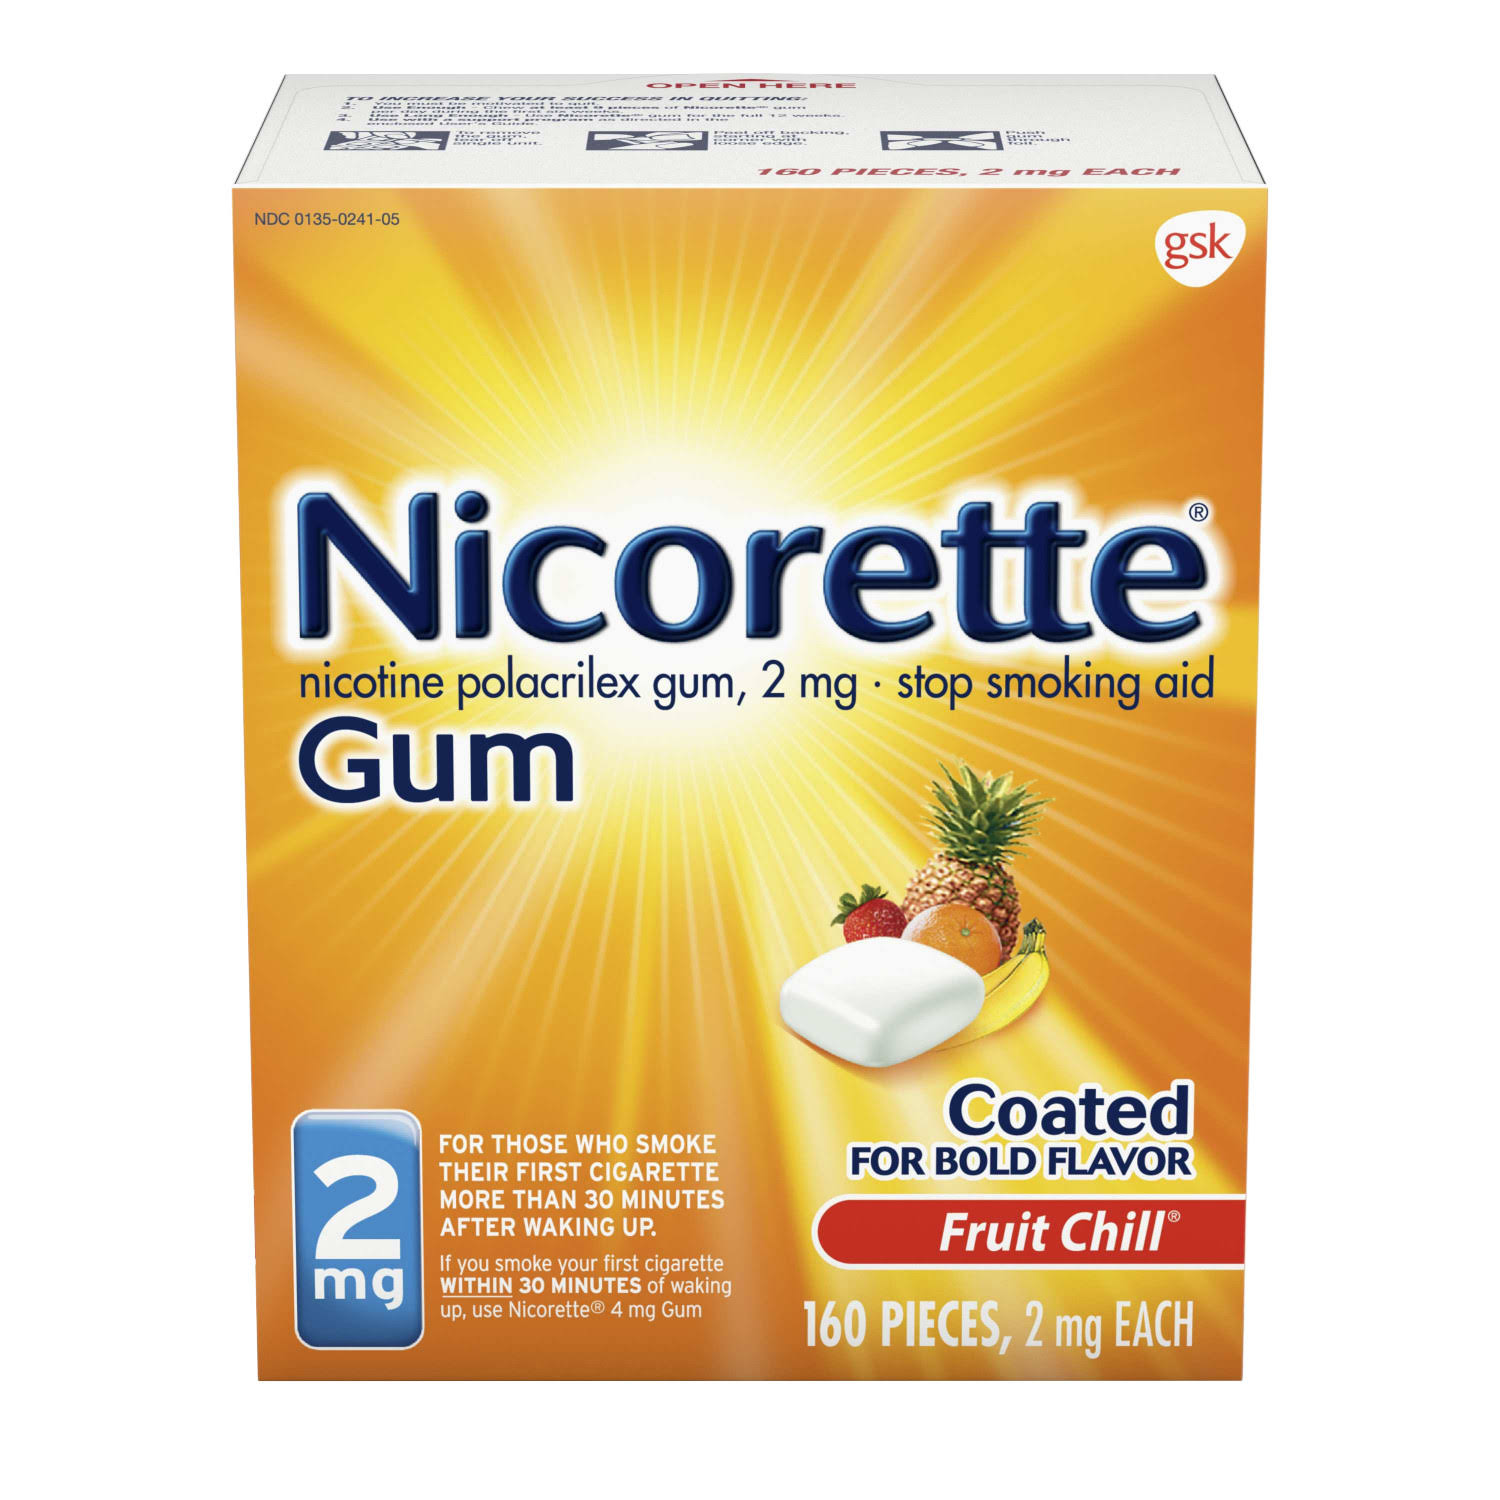 Gsk Nicorette Fruit Chill Gum - 160ct